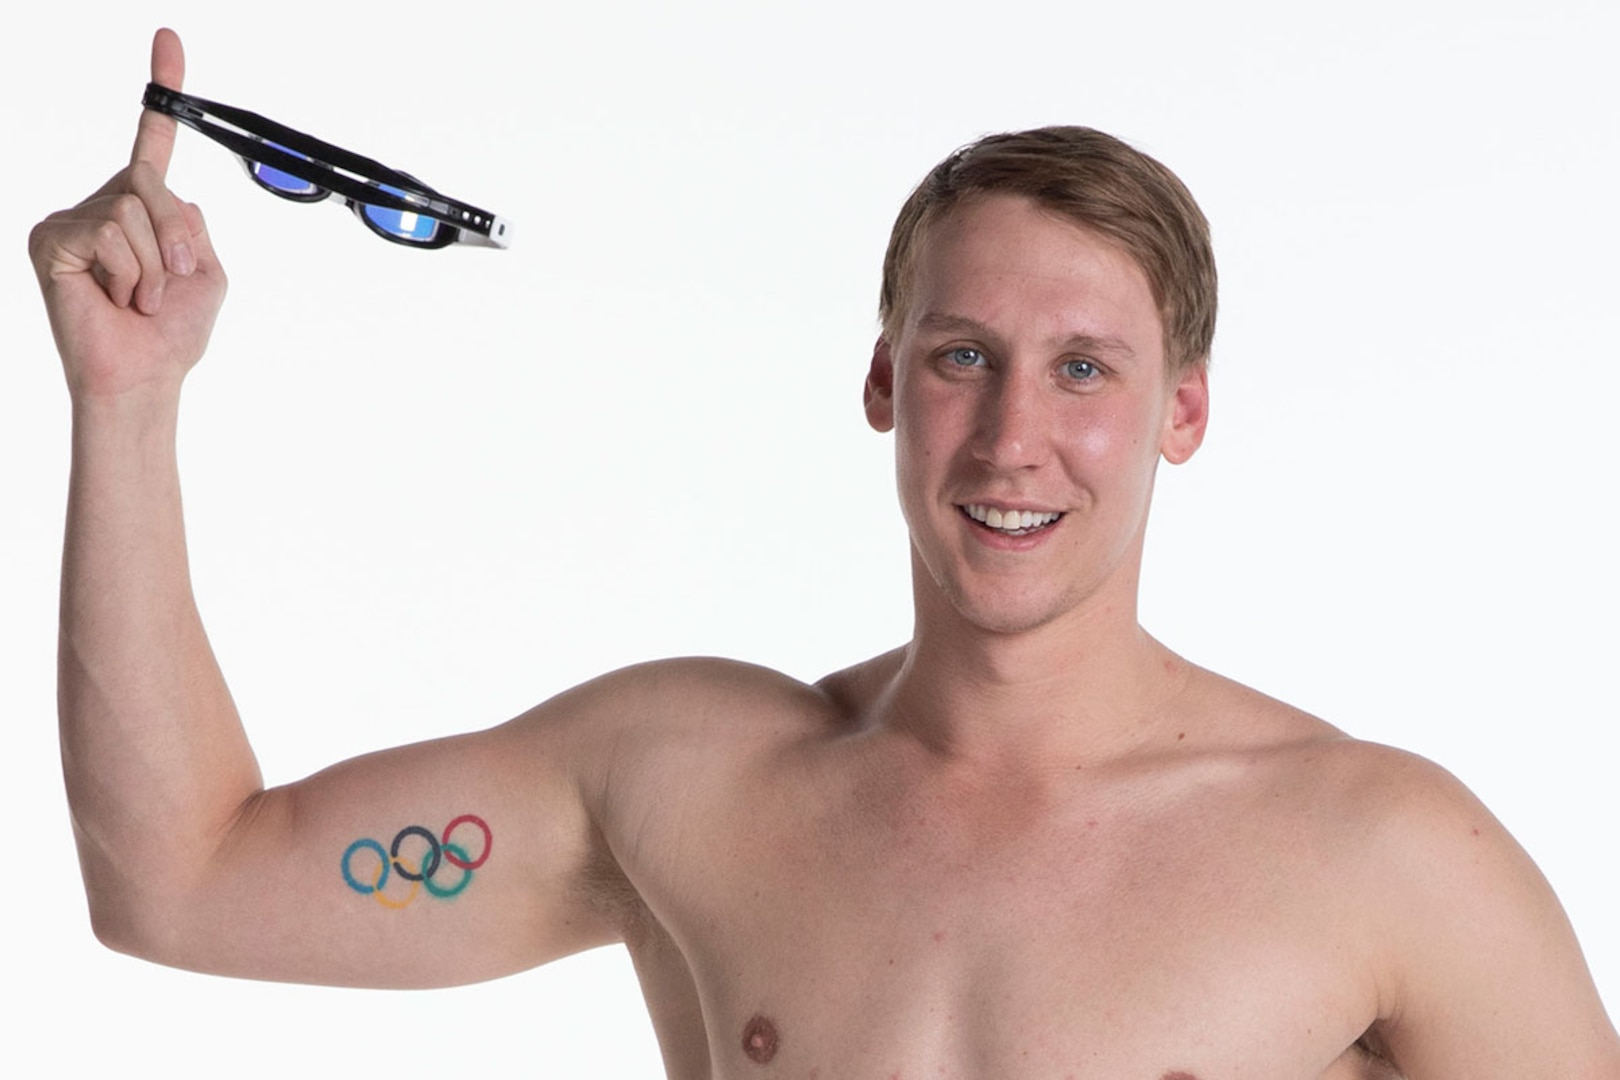 Chase Kalisz shows off the Olympic ring tattoo on his bicep